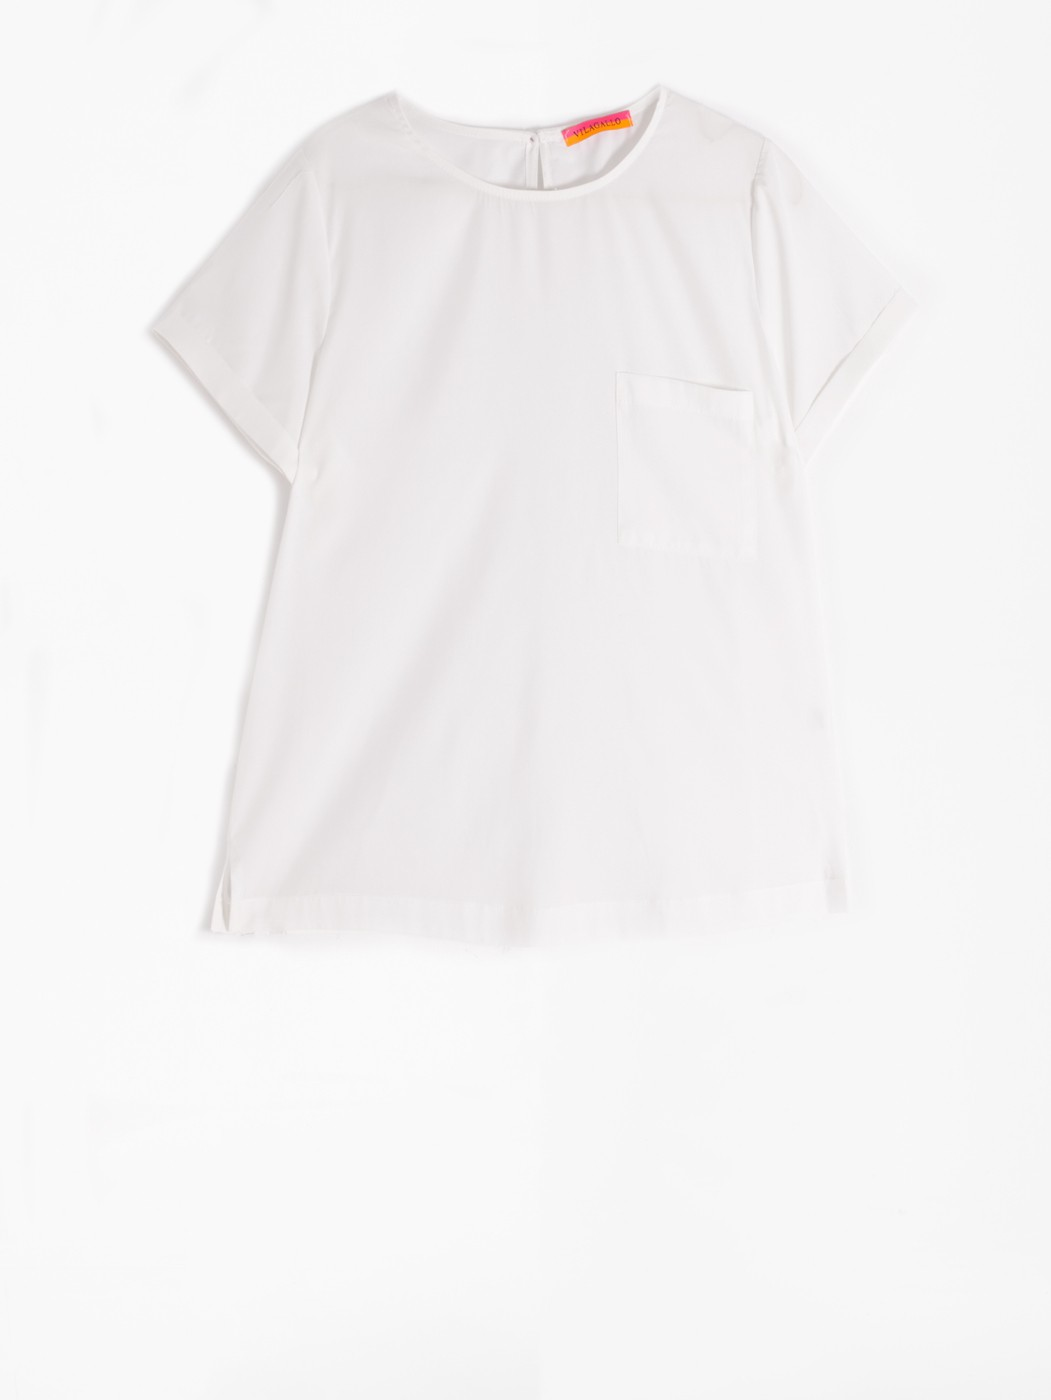 CANDY SHIRT WHITE LYOCELL